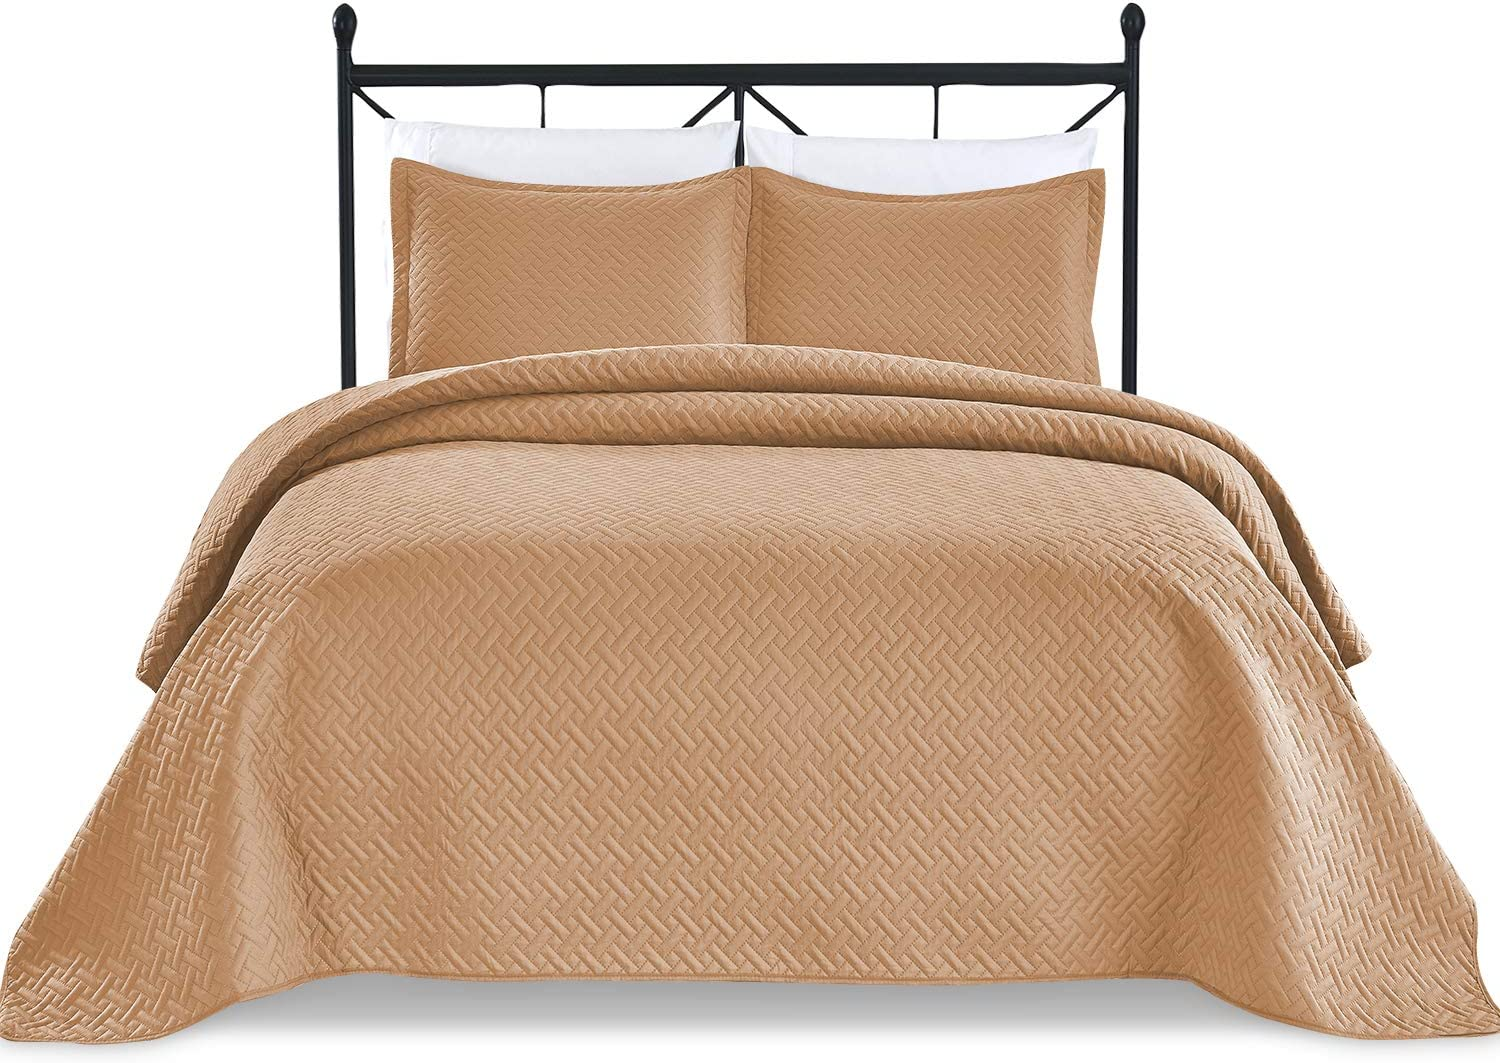 Basic Choice 3-Piece Light Weight Oversize Quilted Bedspread Coverlet Set - Mocha, King / California King